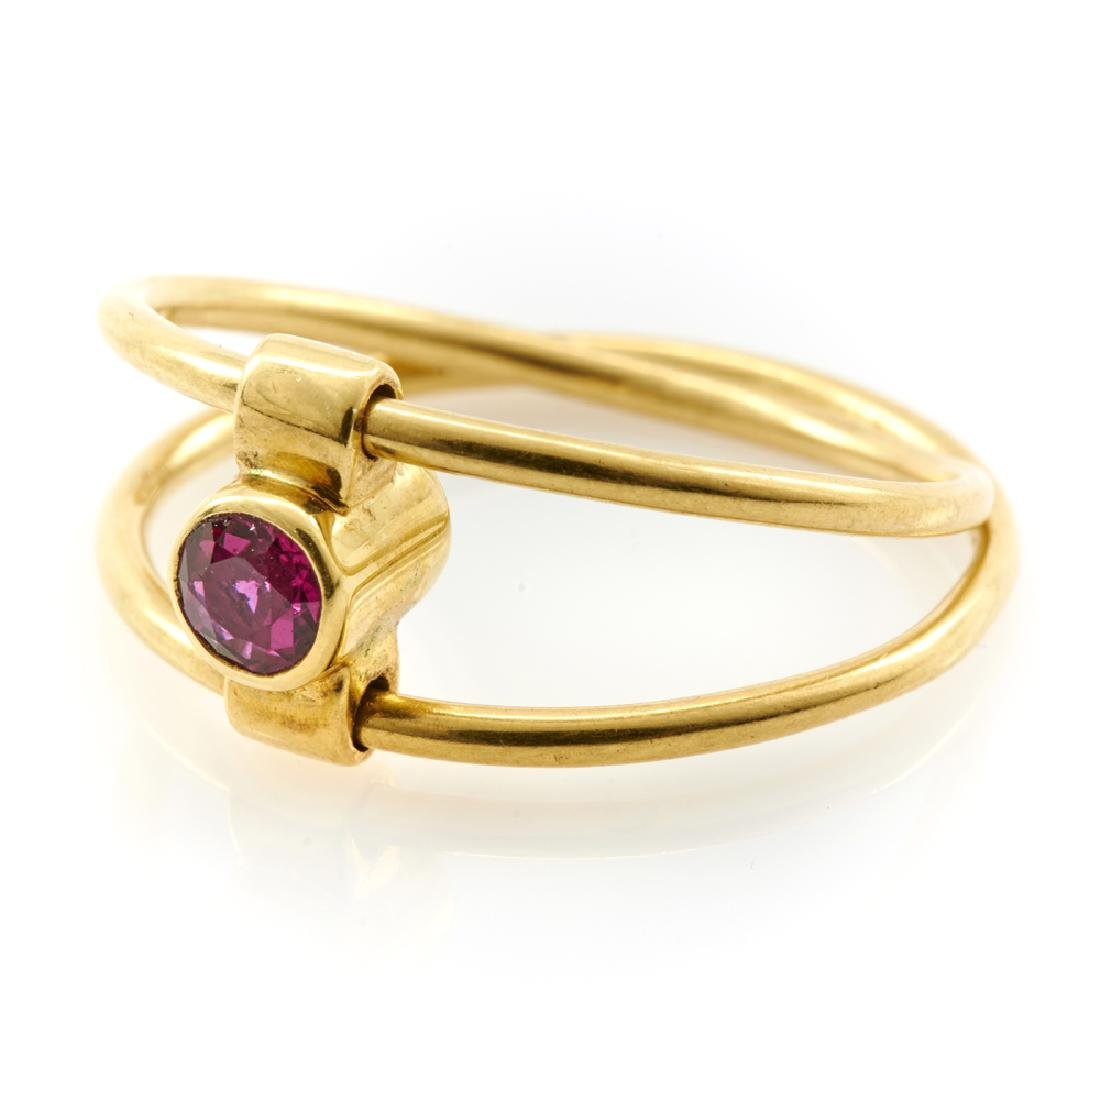 Tiffany & Co. 18k yellow gold, ruby and diamond ring